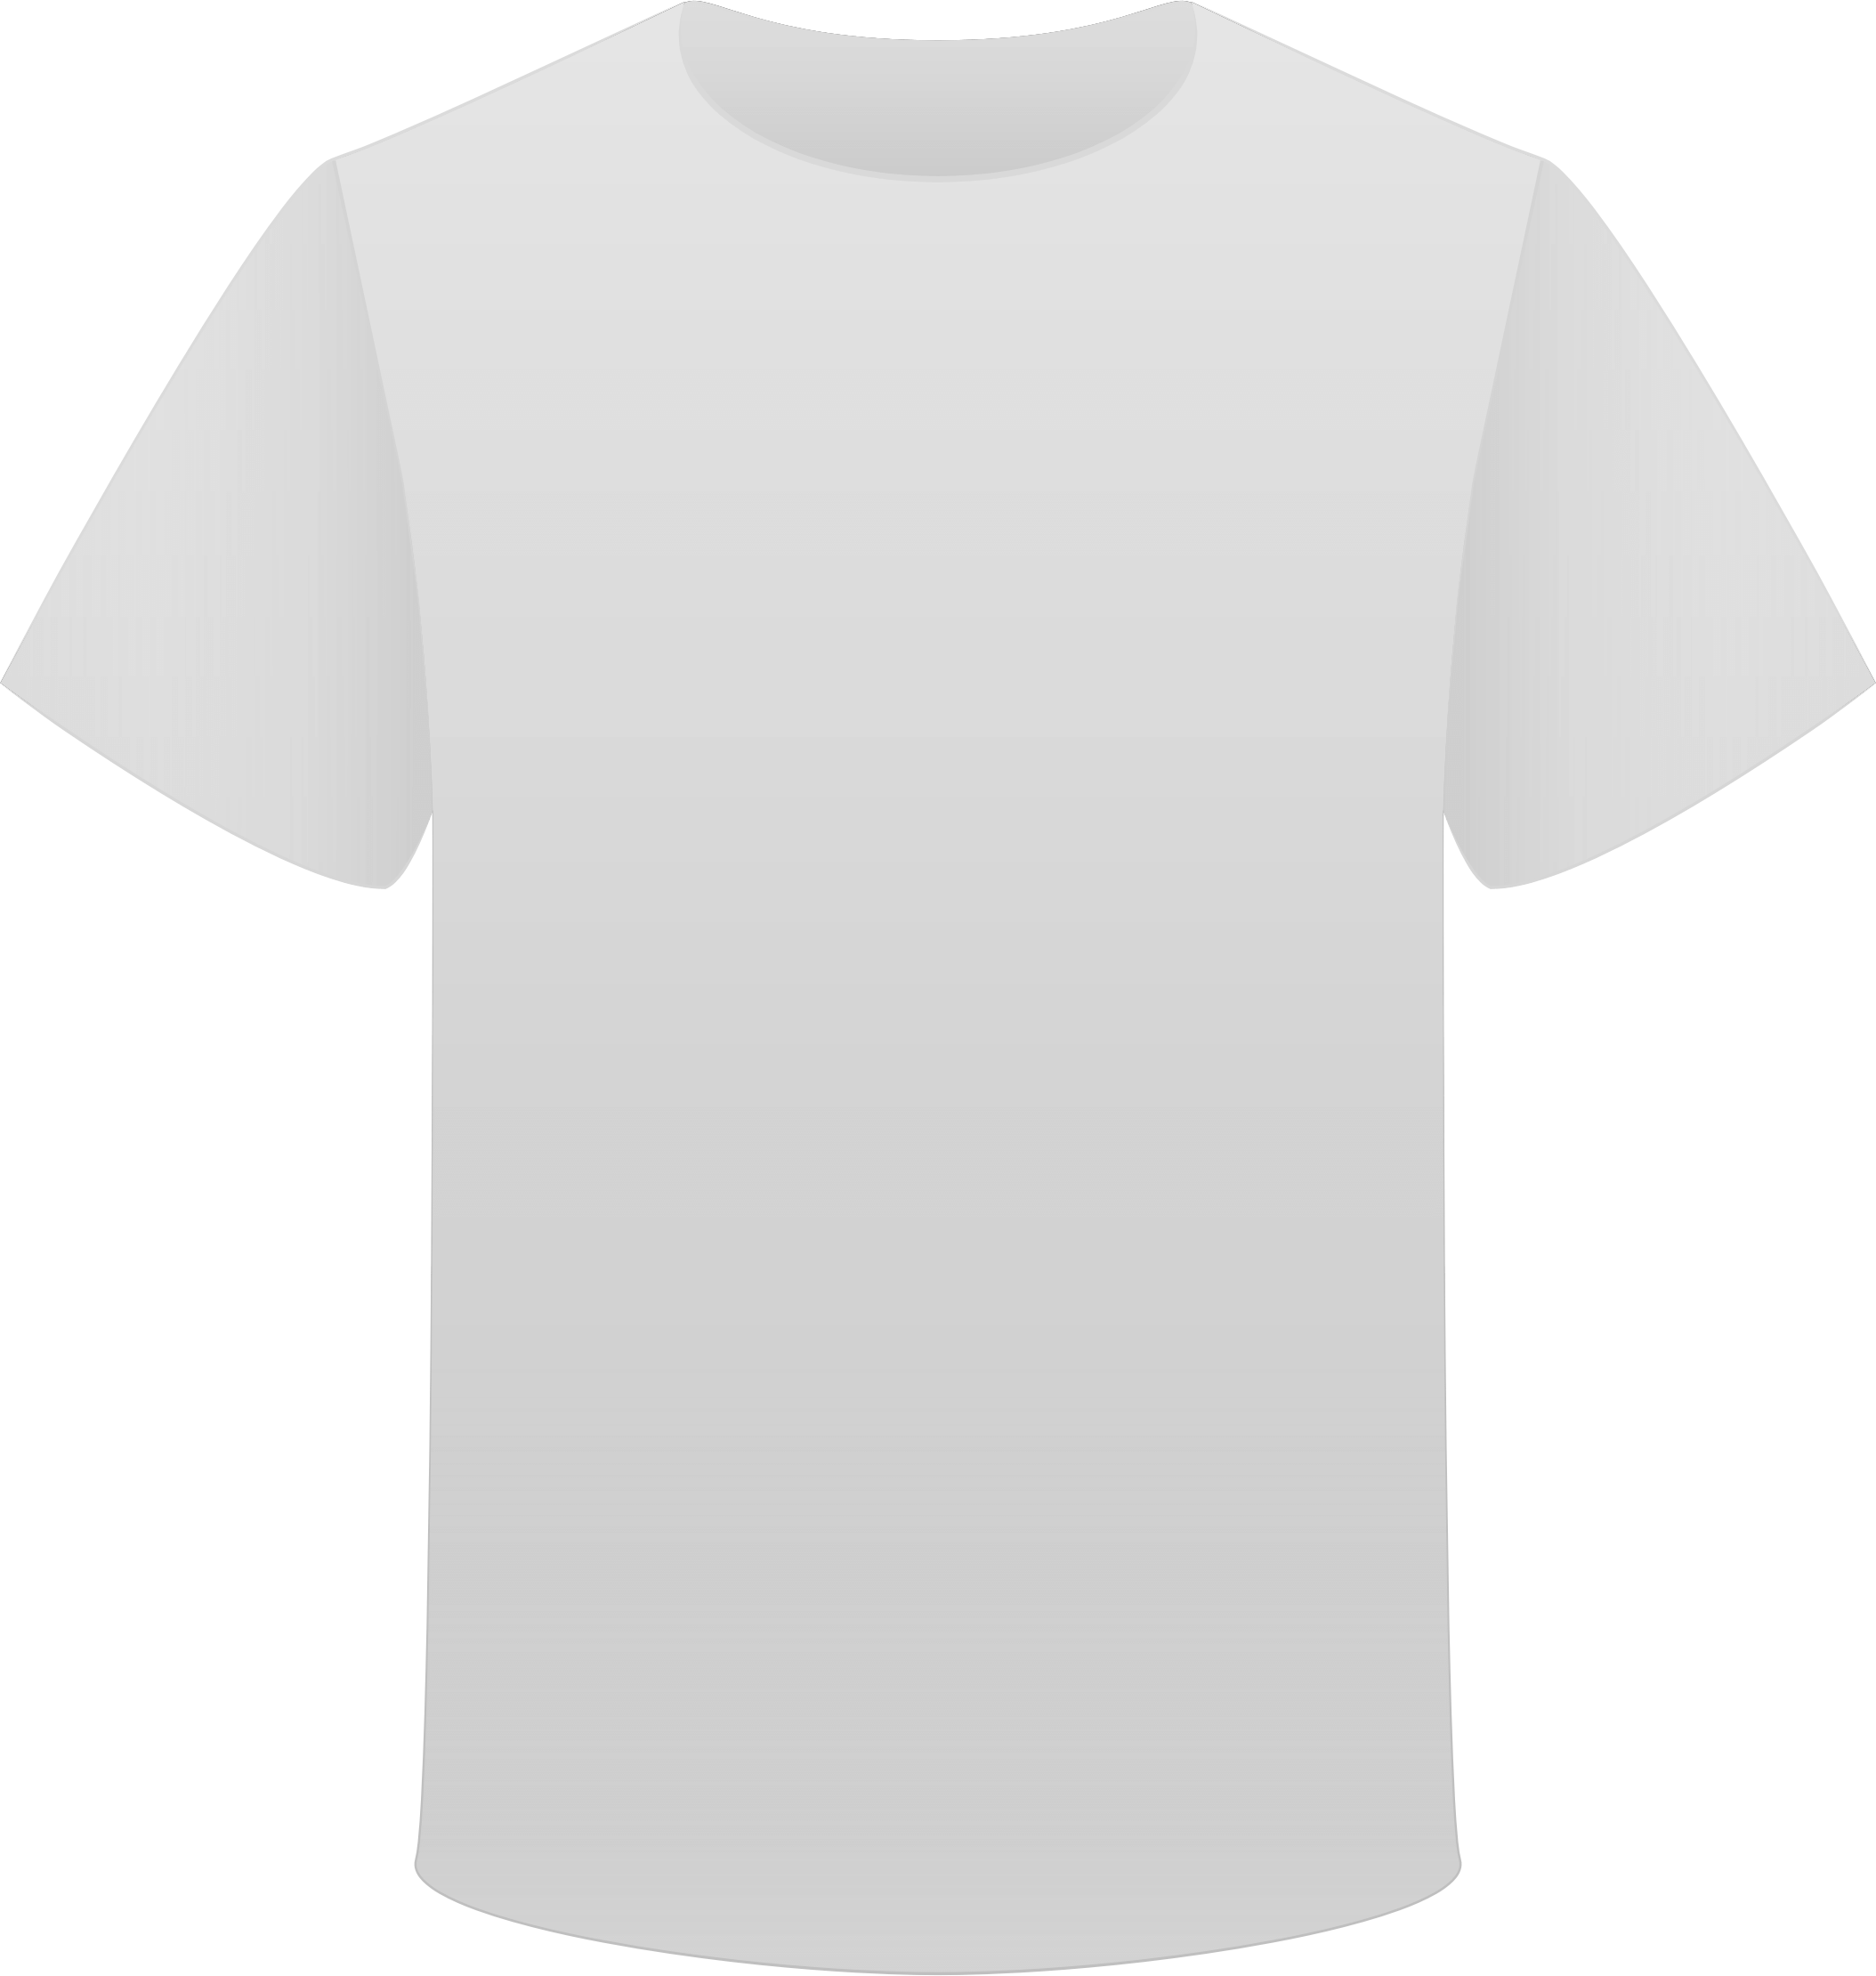 Tshirt White Clipart transparent PNG.